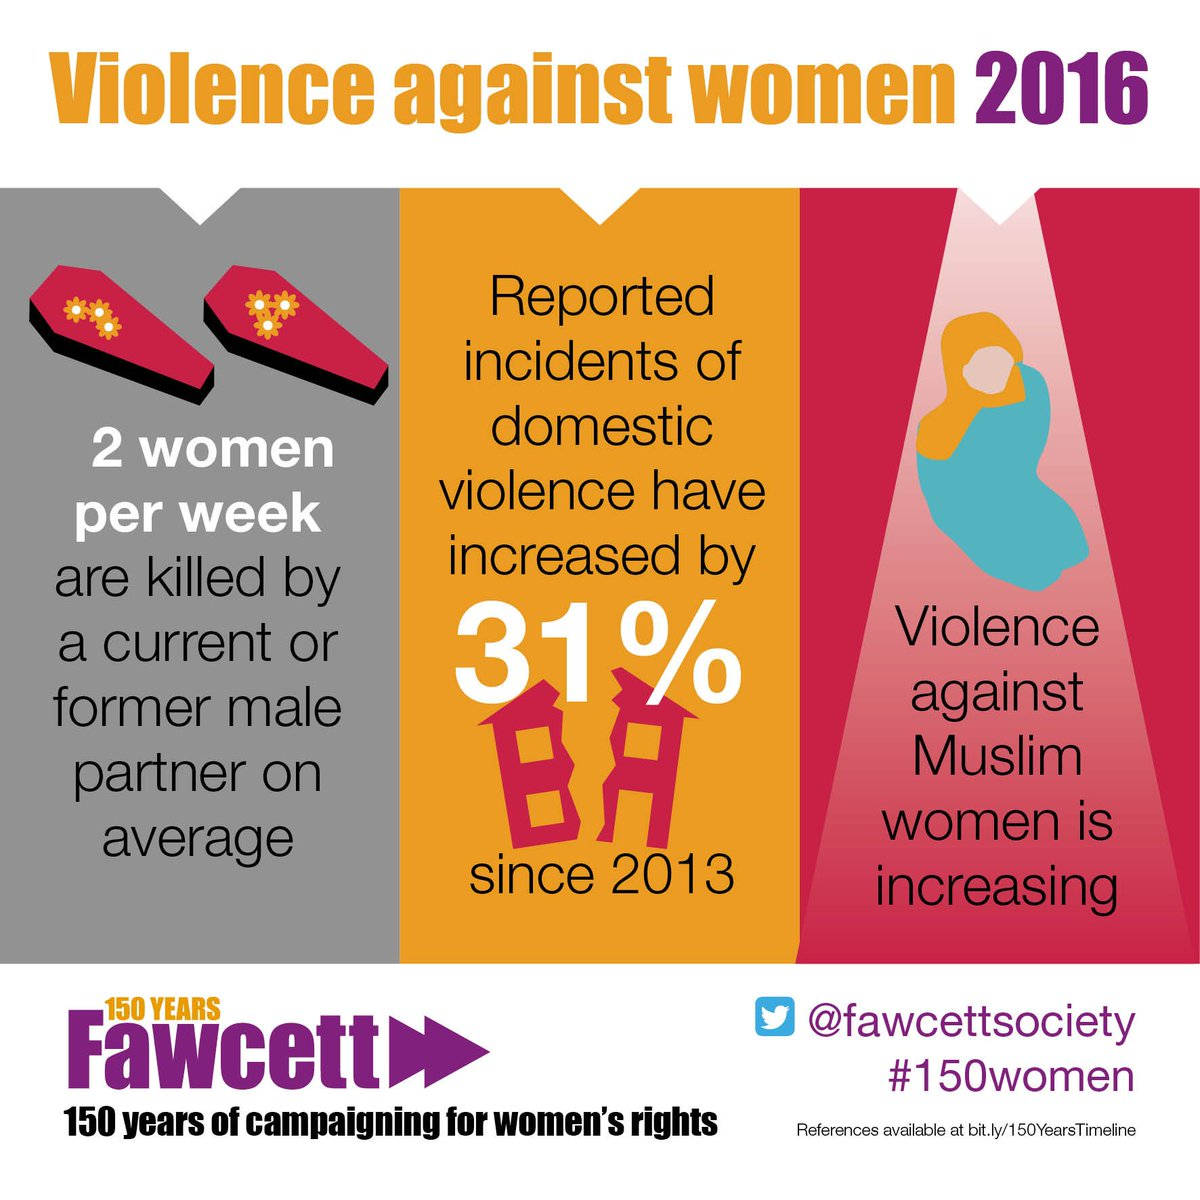 More shocking statistics on how violence against women is effecting women in 2016 #IWD2016 https://t.co/5X8WdLVkEi